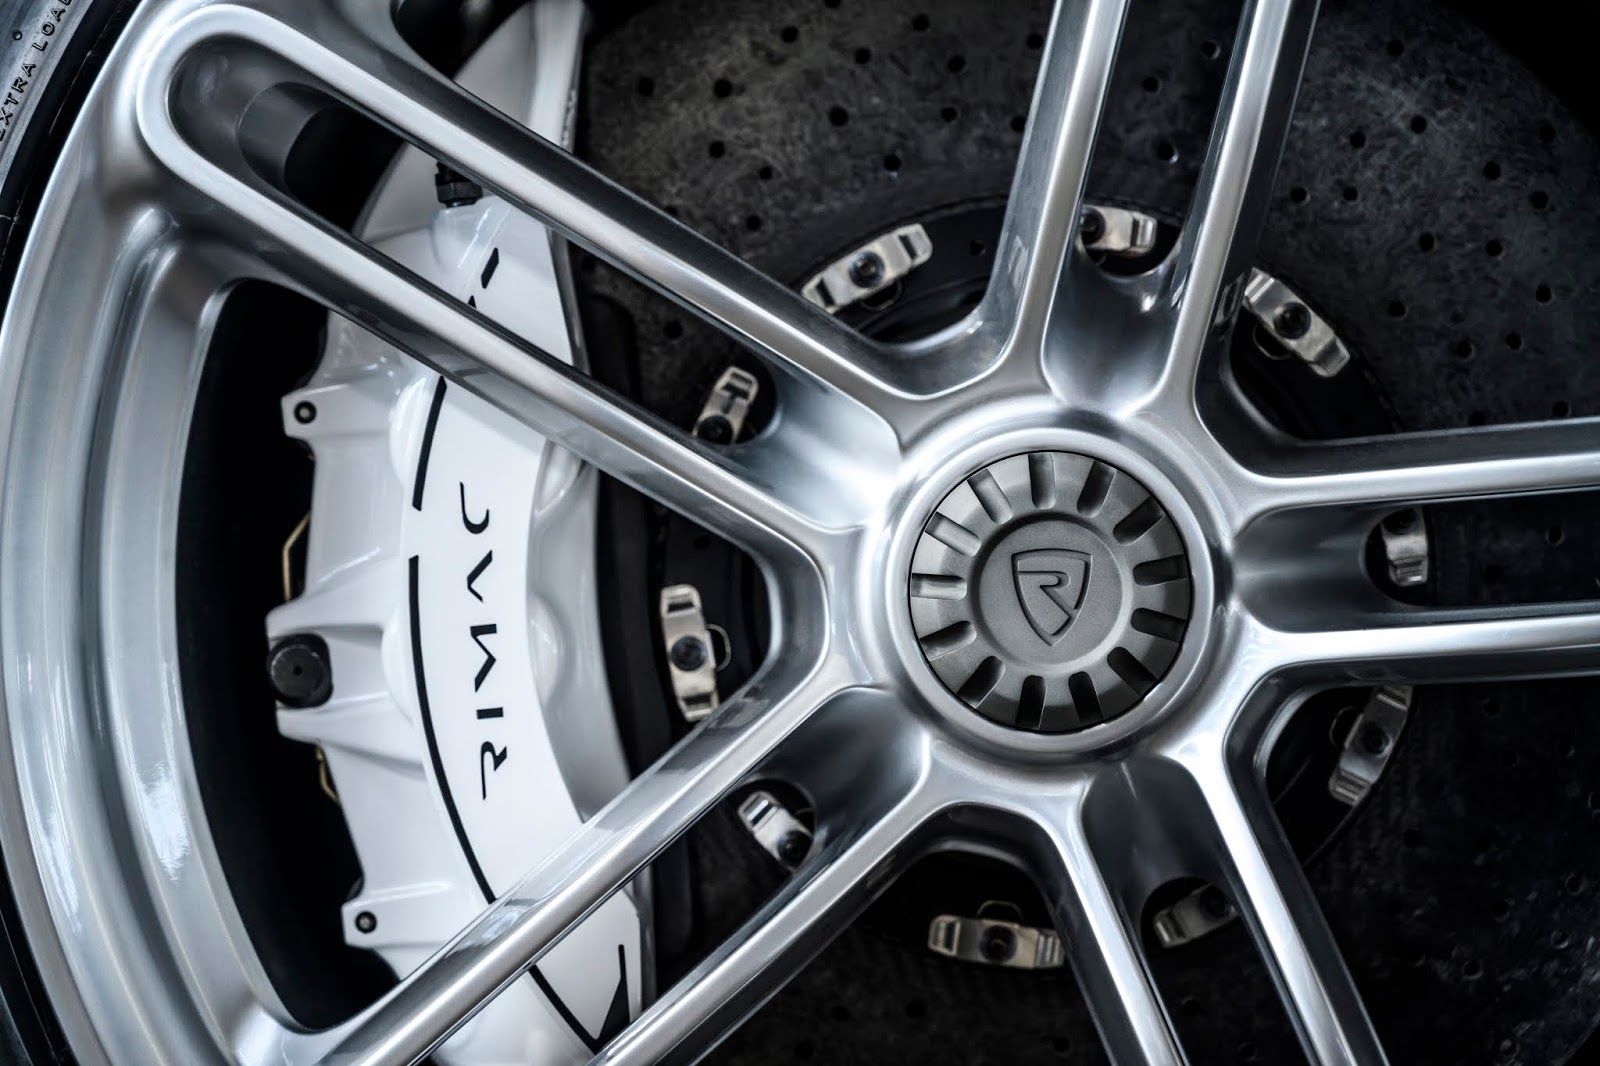 C TWO Day Detail Wheel Rimac C Two. Η νέα φυλή στα hypercars, έρχεται με 1900 ίππους. C Two, Electric cars, hypercar, Rimac, zblog